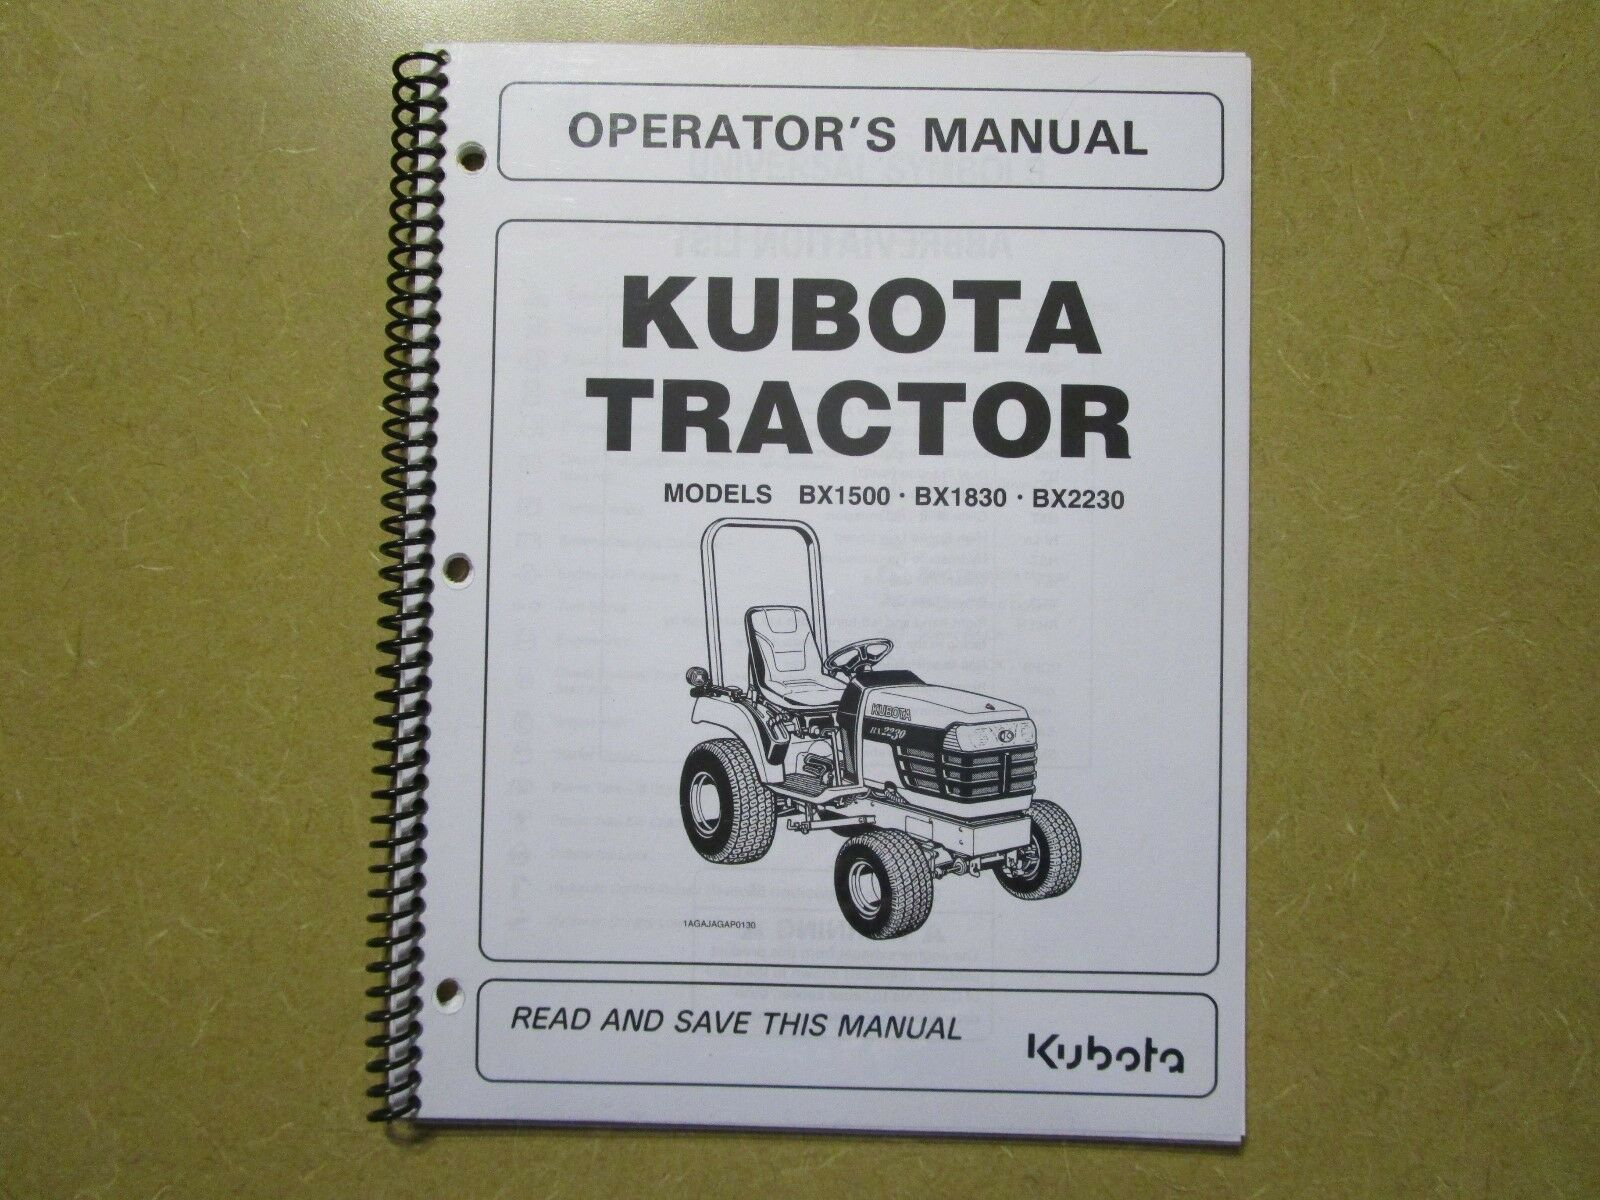 Kubota BX1500 BX1830 BX2230 BX 1500 1830 2230 tractor owners & maintenanc  manual 1 of 1 See More